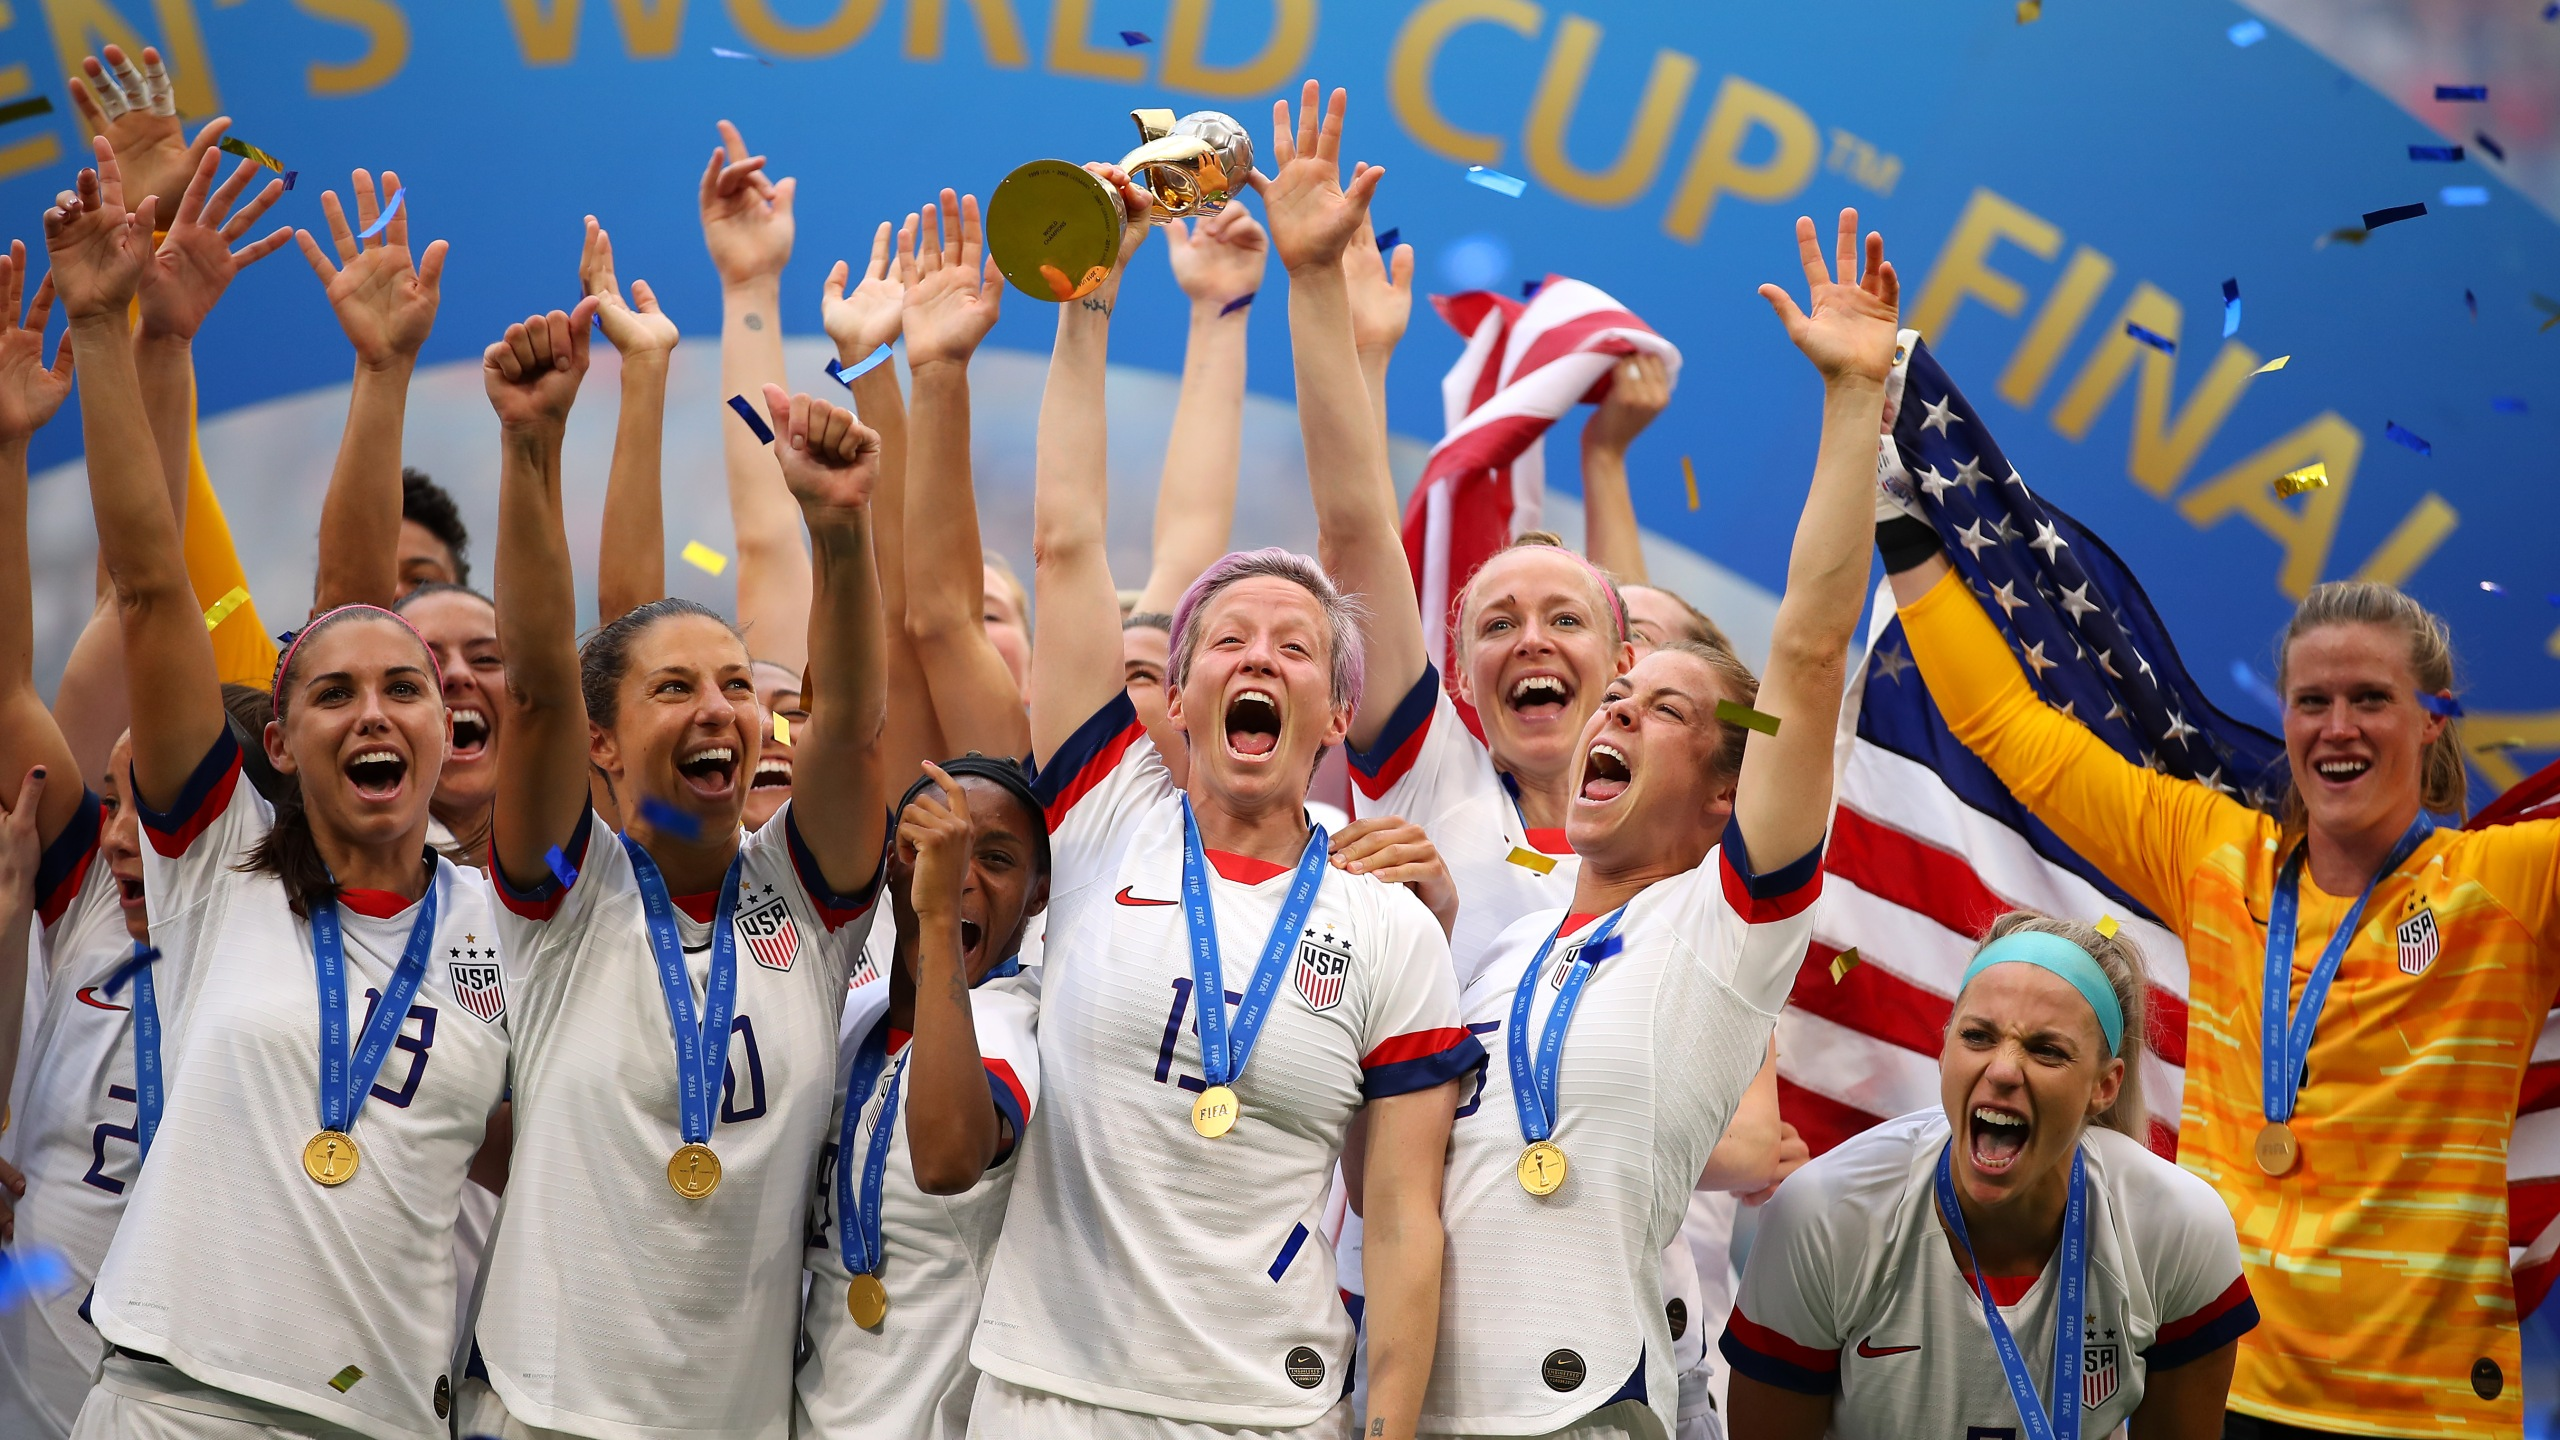 Megan Rapinoe lifts the trophy as the U.S. Women's National Soccer Team celebrates their victory during the 2019 FIFA Women's World Cup final match between the U.S. and the Netherlands on July 7, 2019, in Lyon, France. (Richard Heathcote/Getty Images)